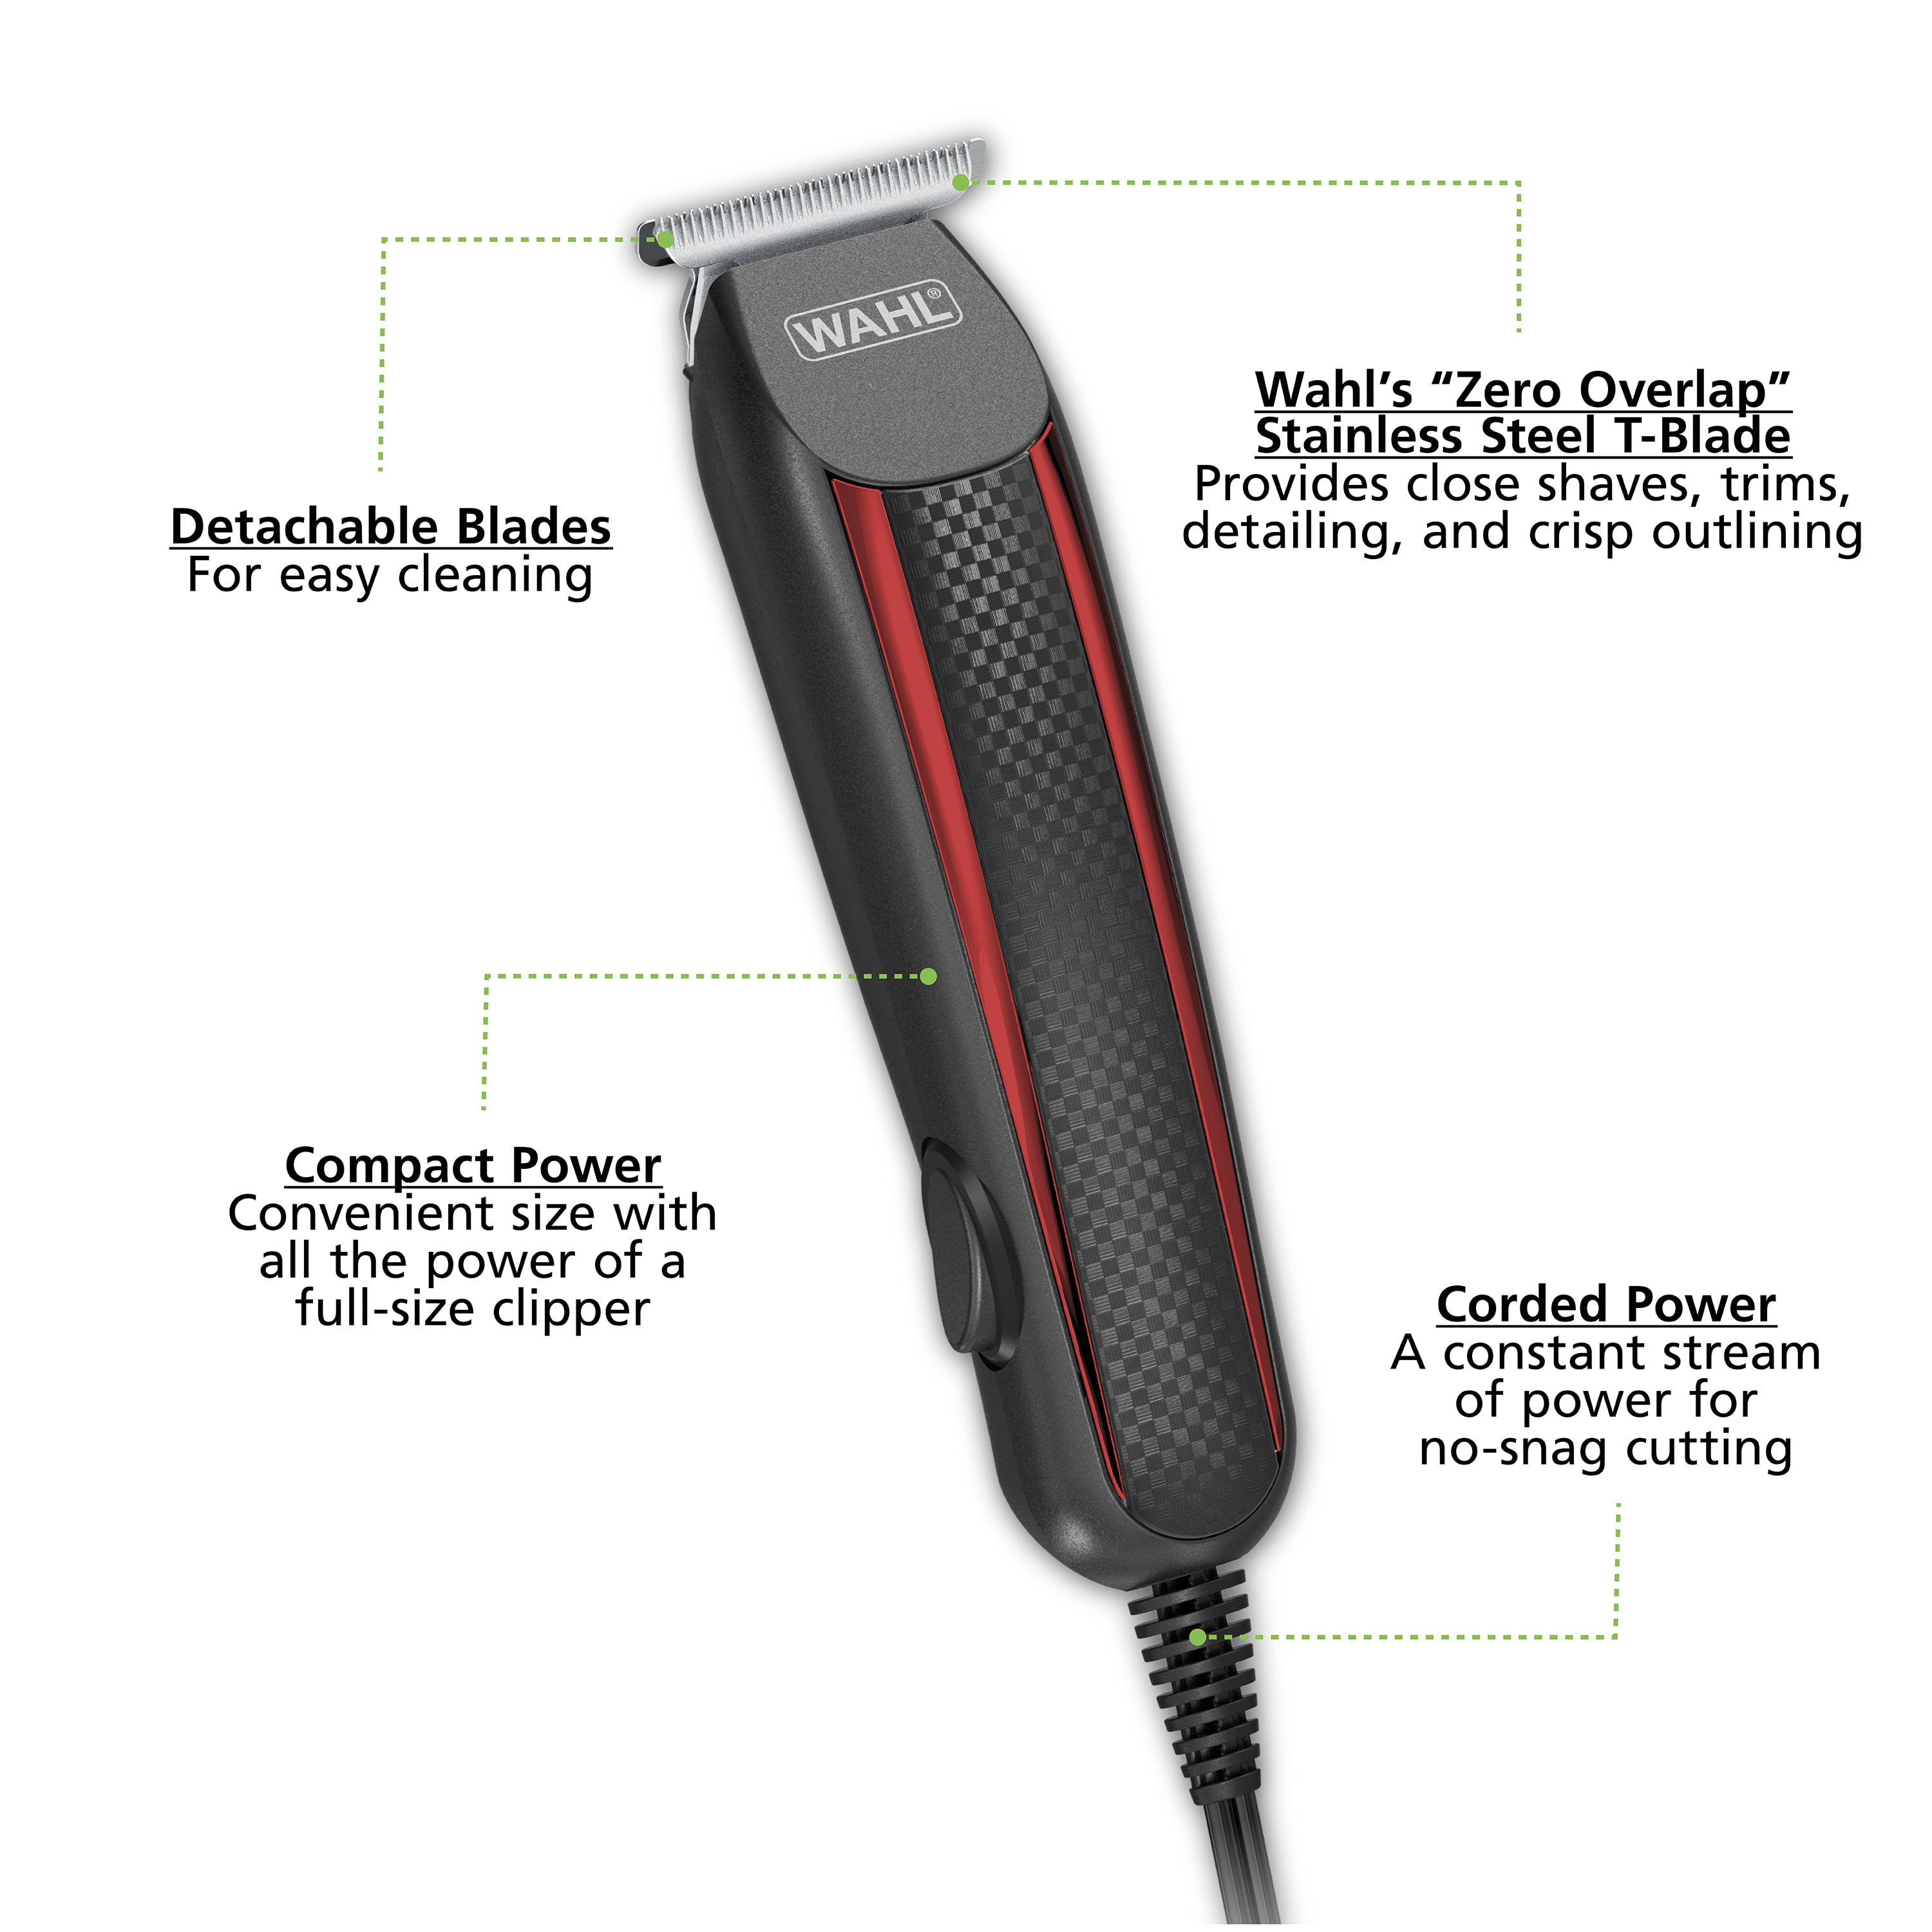 Wahl Edge Pro Trimmer Allows You To Shave Detail Trim Fade And